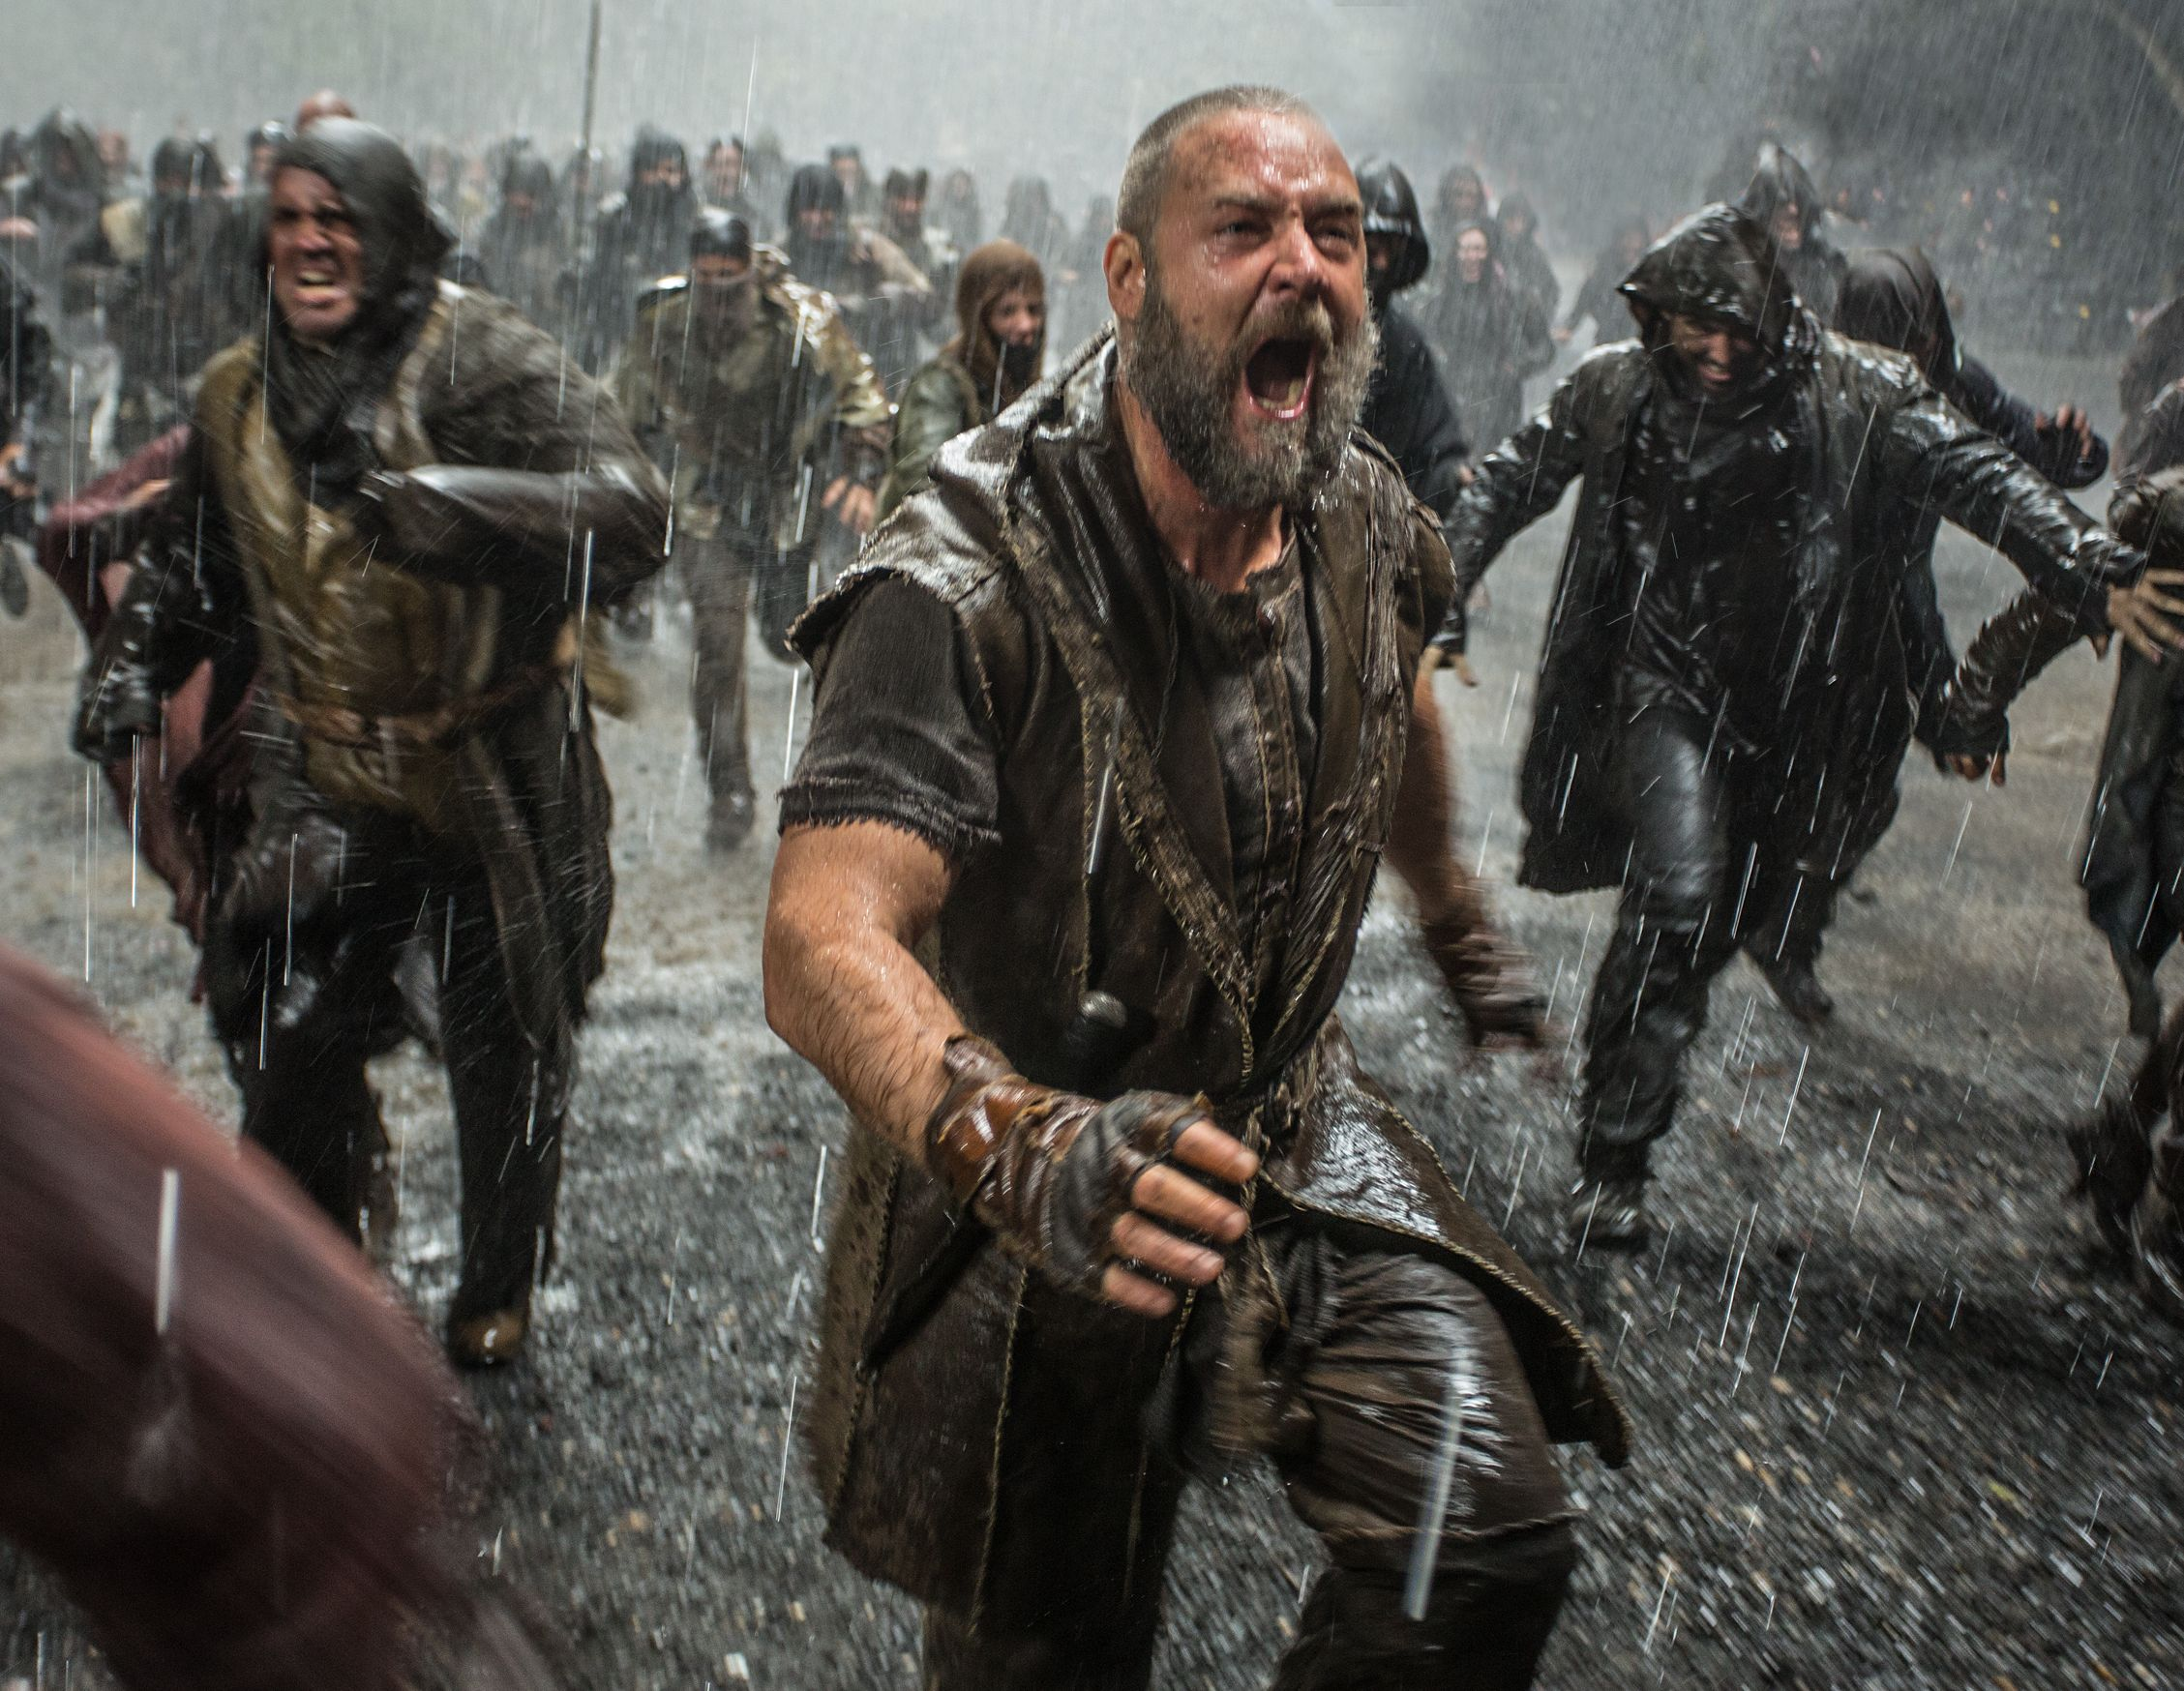 Russell Crowe as Noah screaming in the rain